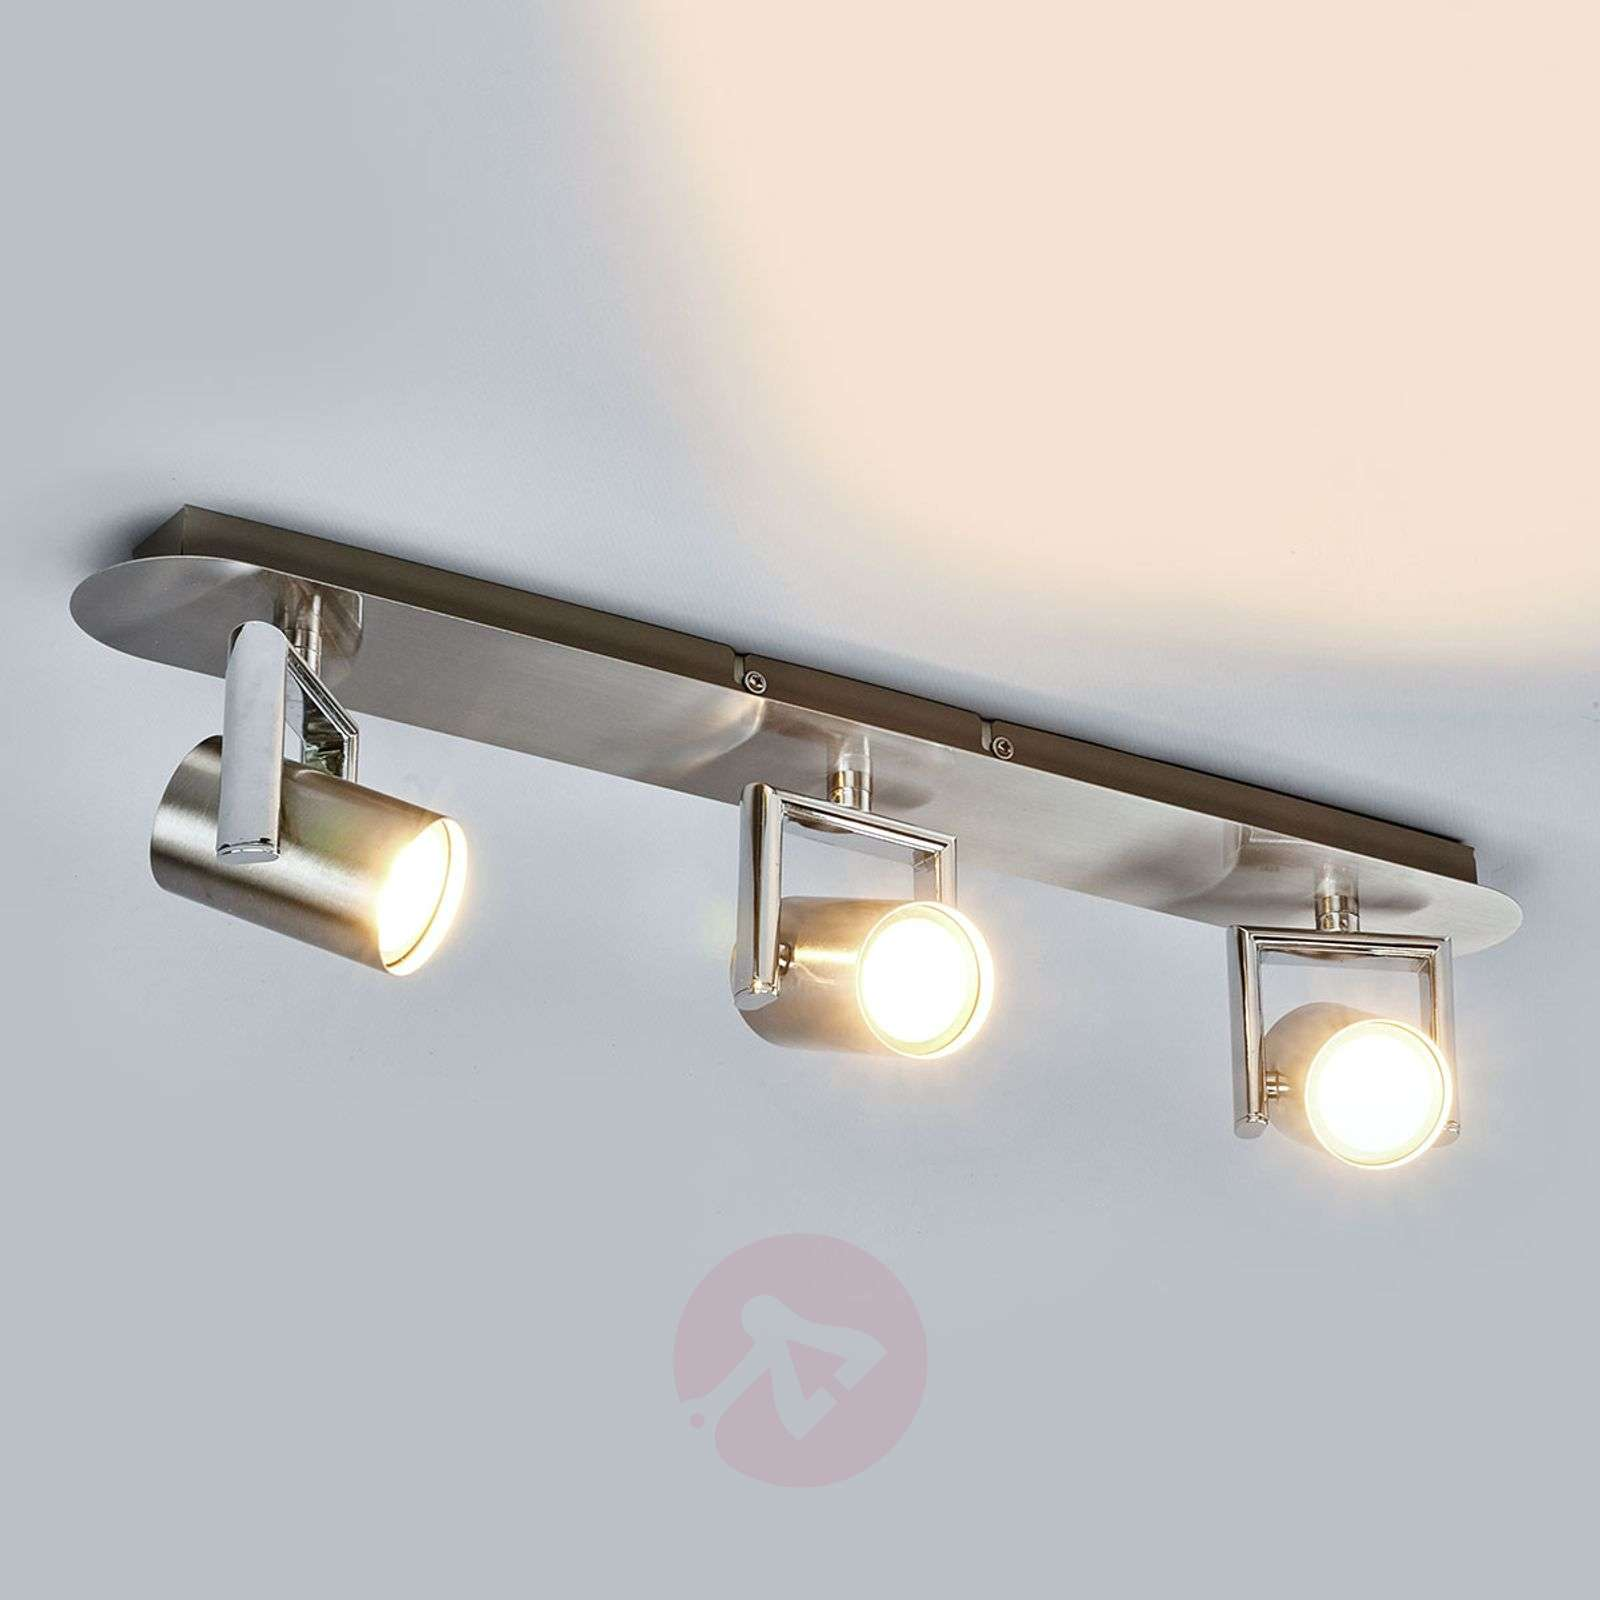 Plafonnier LED Luciana à trois lampes, nickel-9975025-01